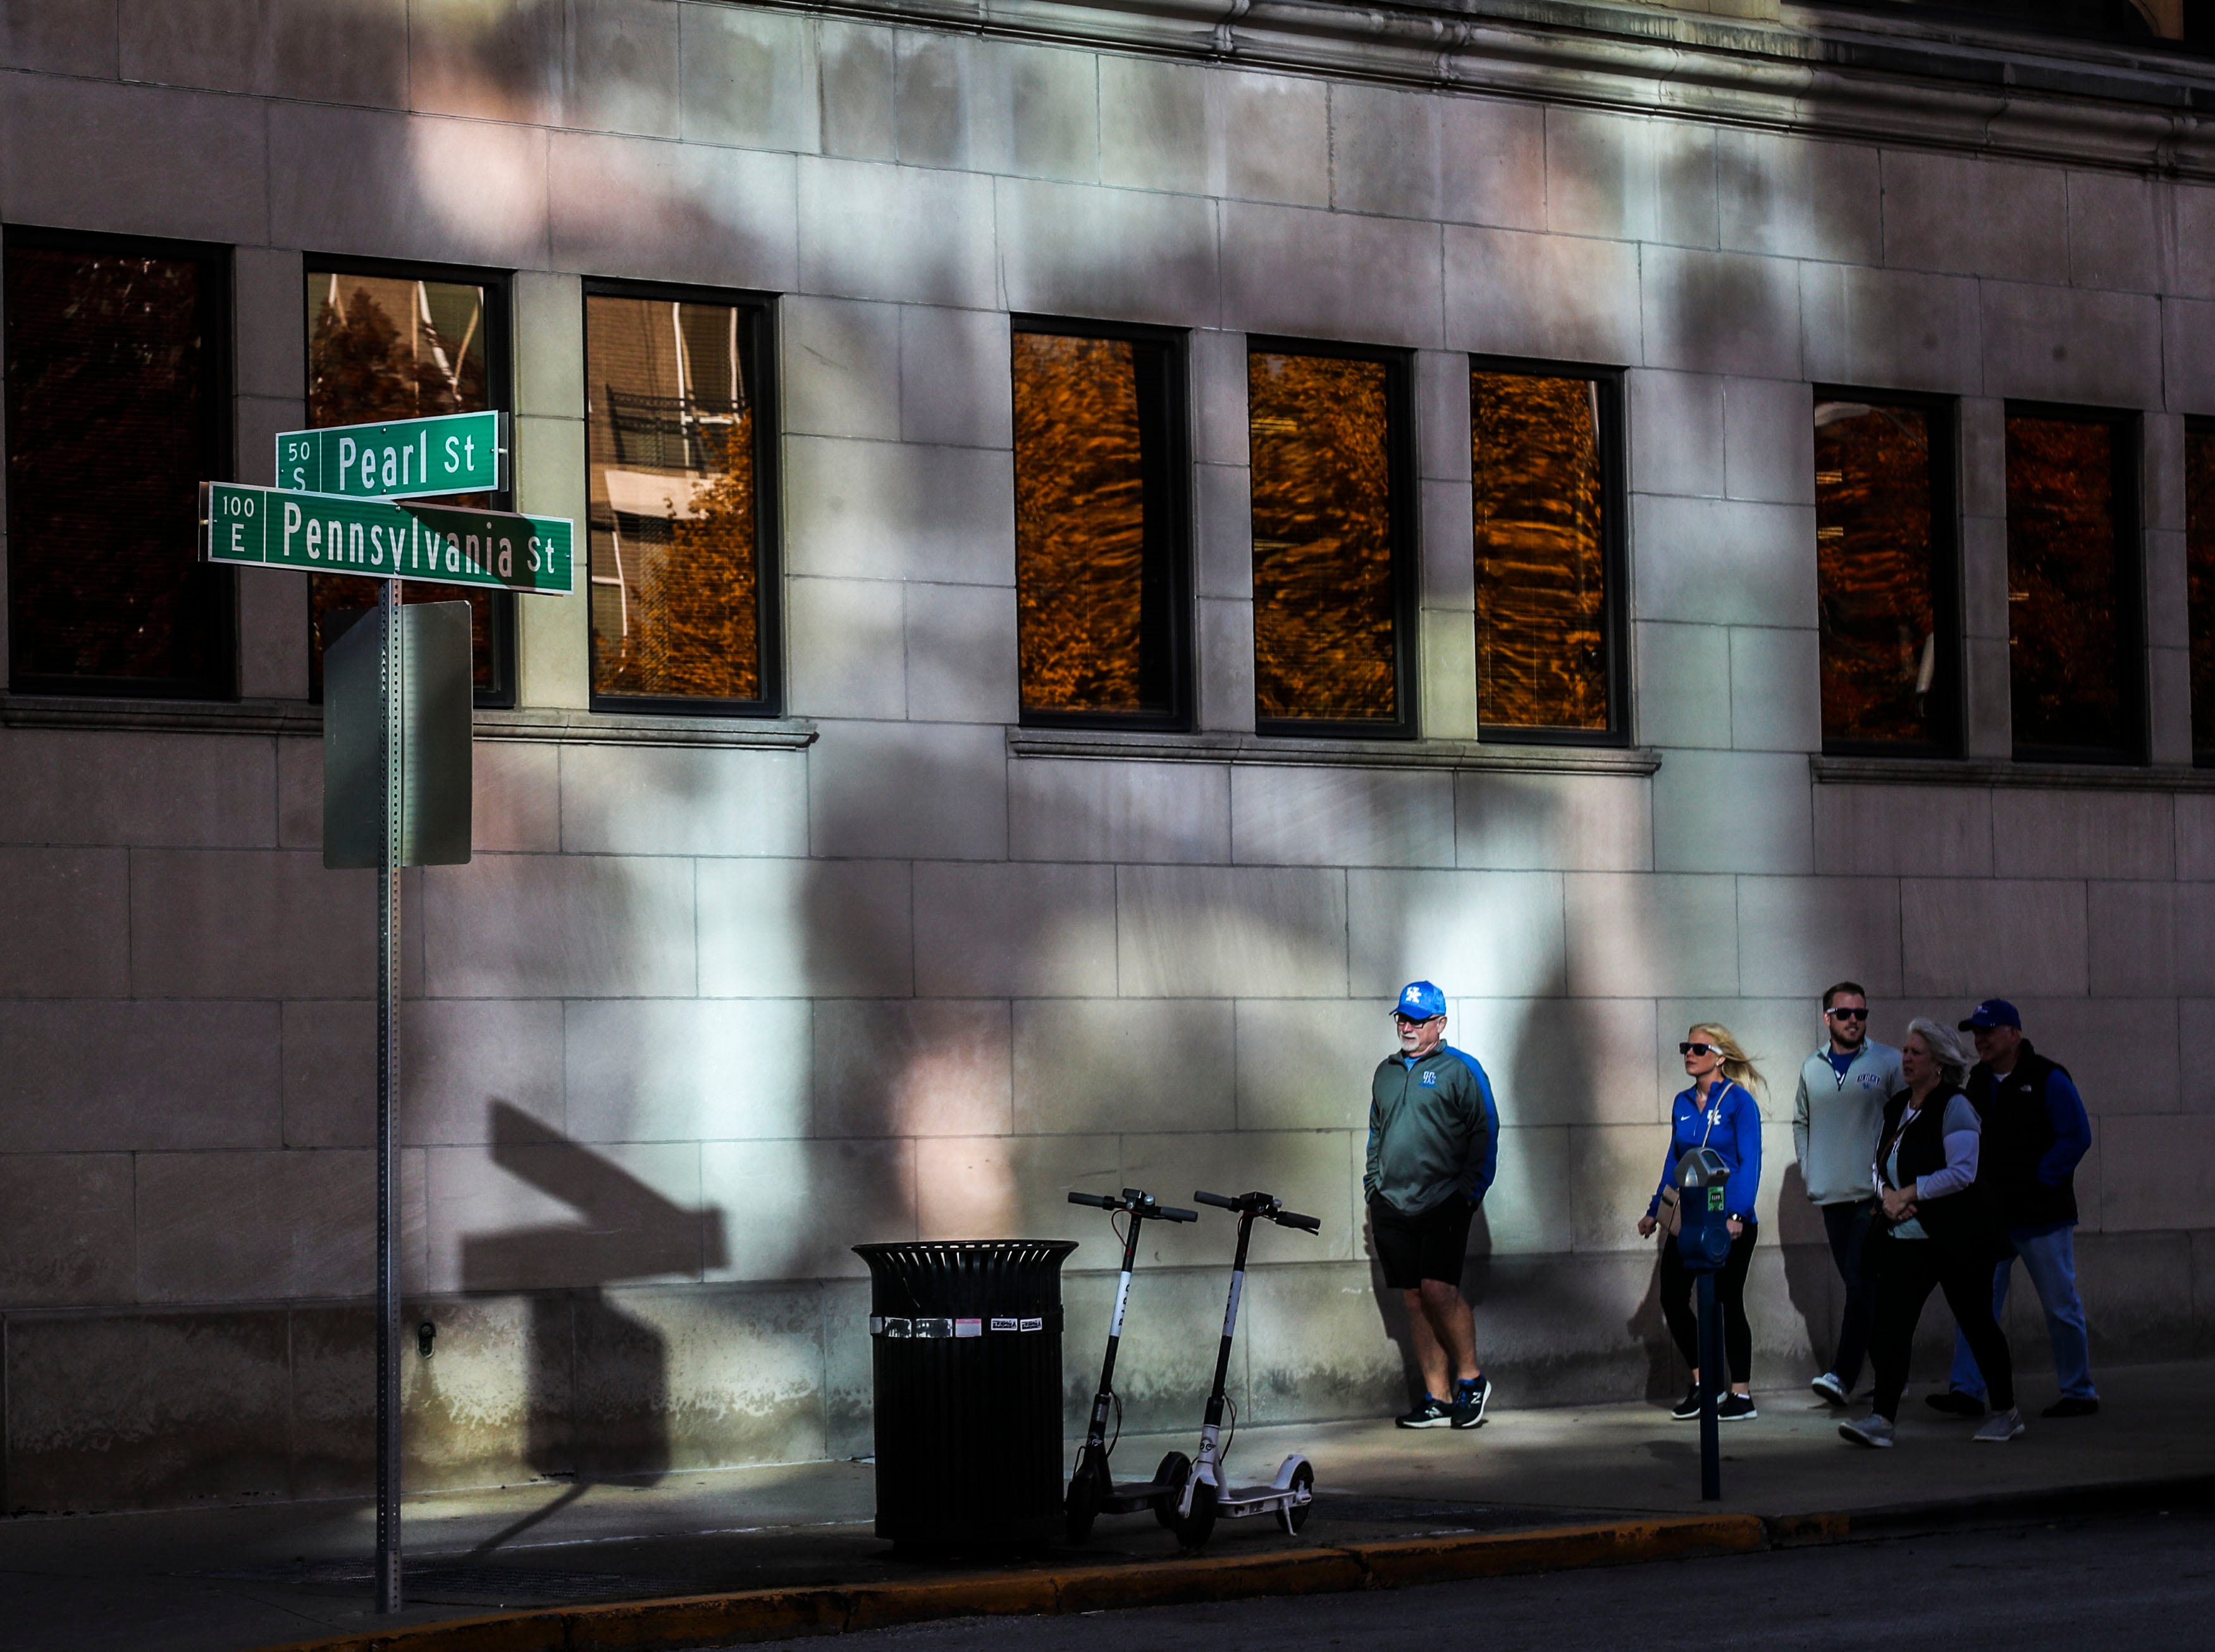 Kentucky fans walk in downtown Indianapolis before the Wildcats' game against Duke in the Champions Classic Tuesday night. Nov. 6, 2018